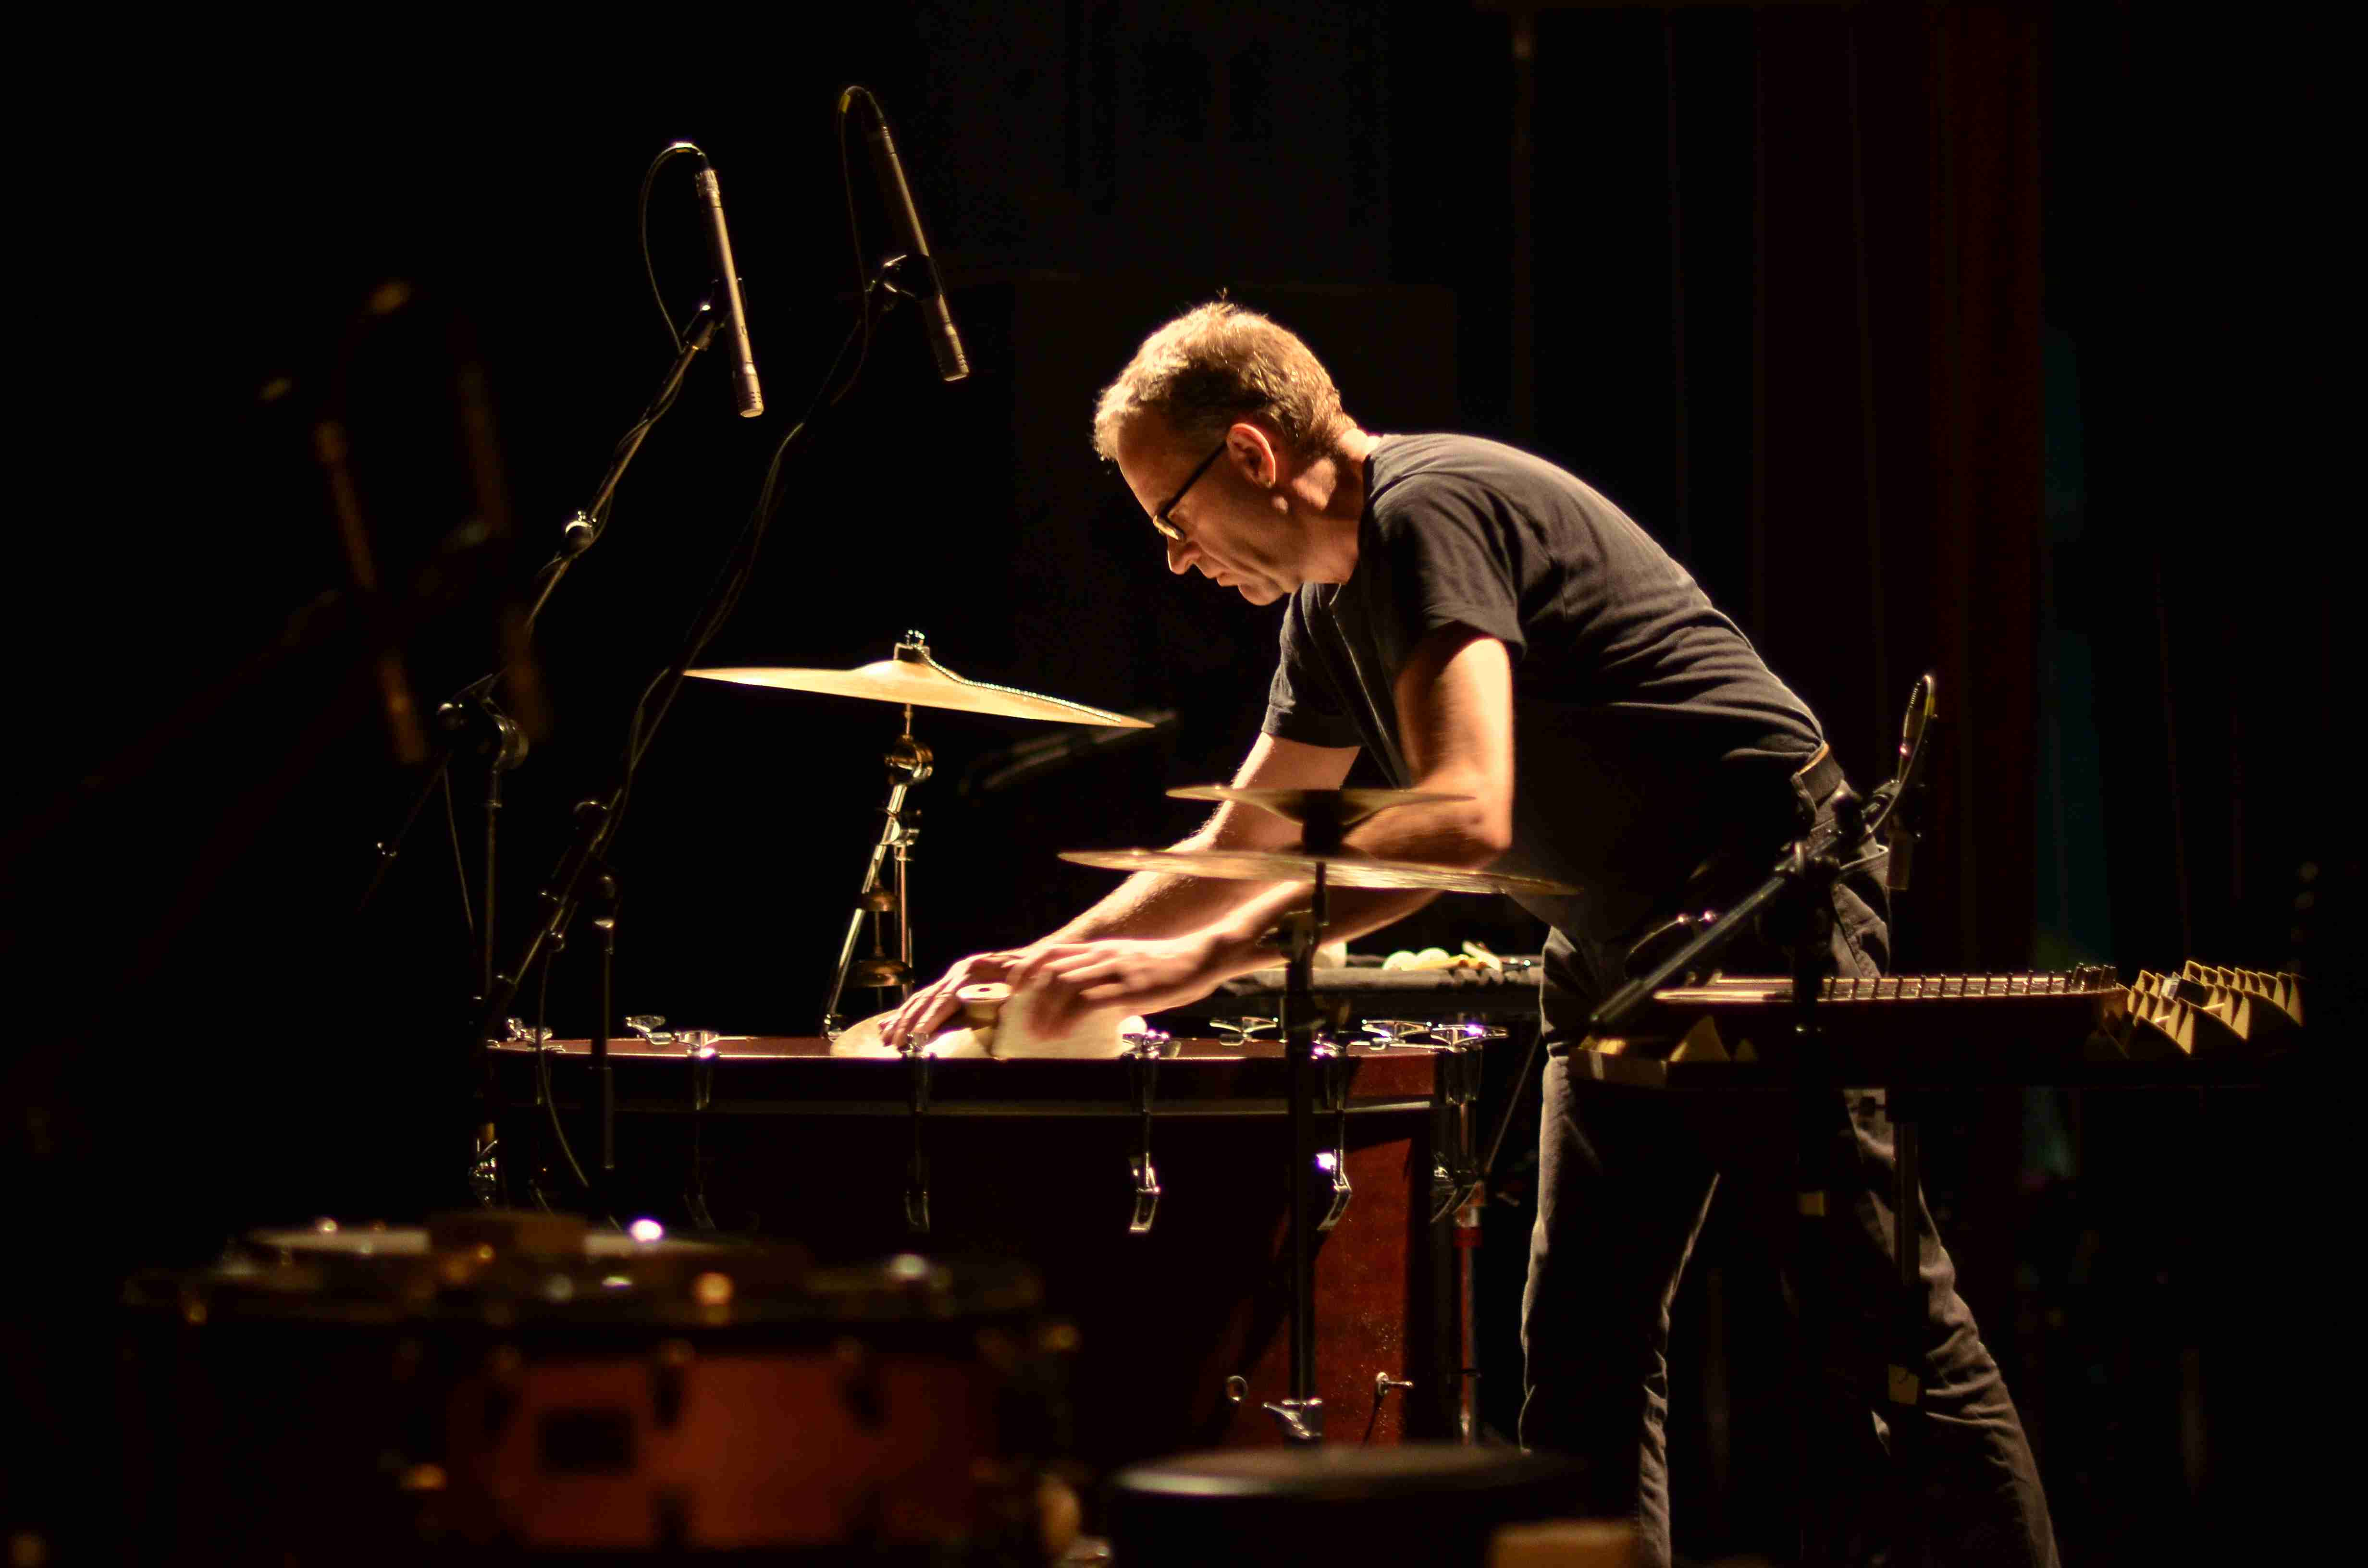 Burkhard Beins Solo in Hanoi